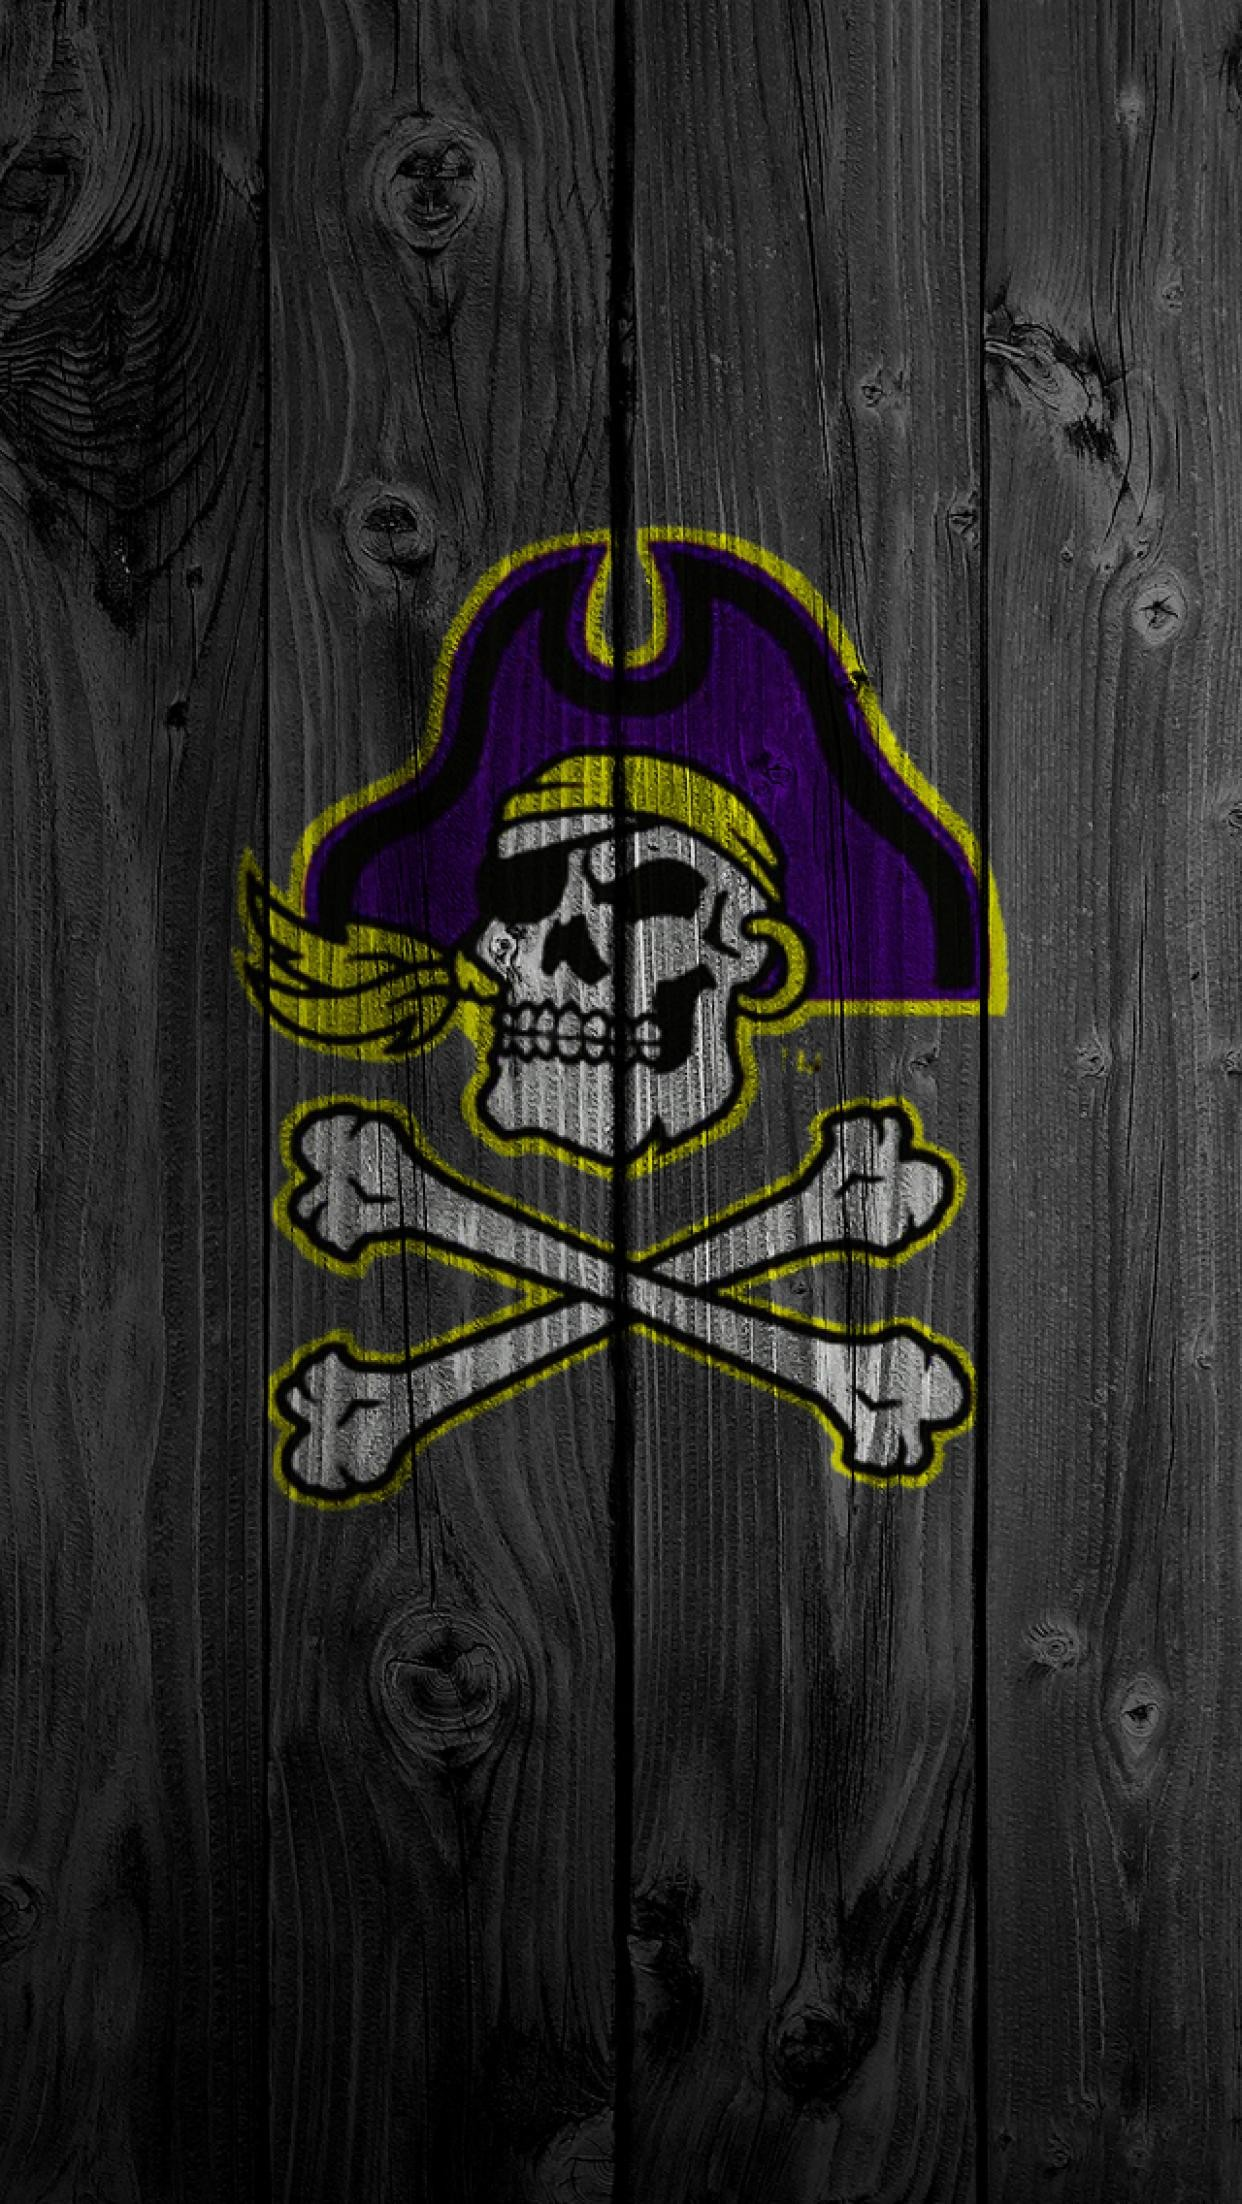 1242x2204 pirate flag wallpaper iphone - photo #2. Windows 3D Screensavers Free  Download